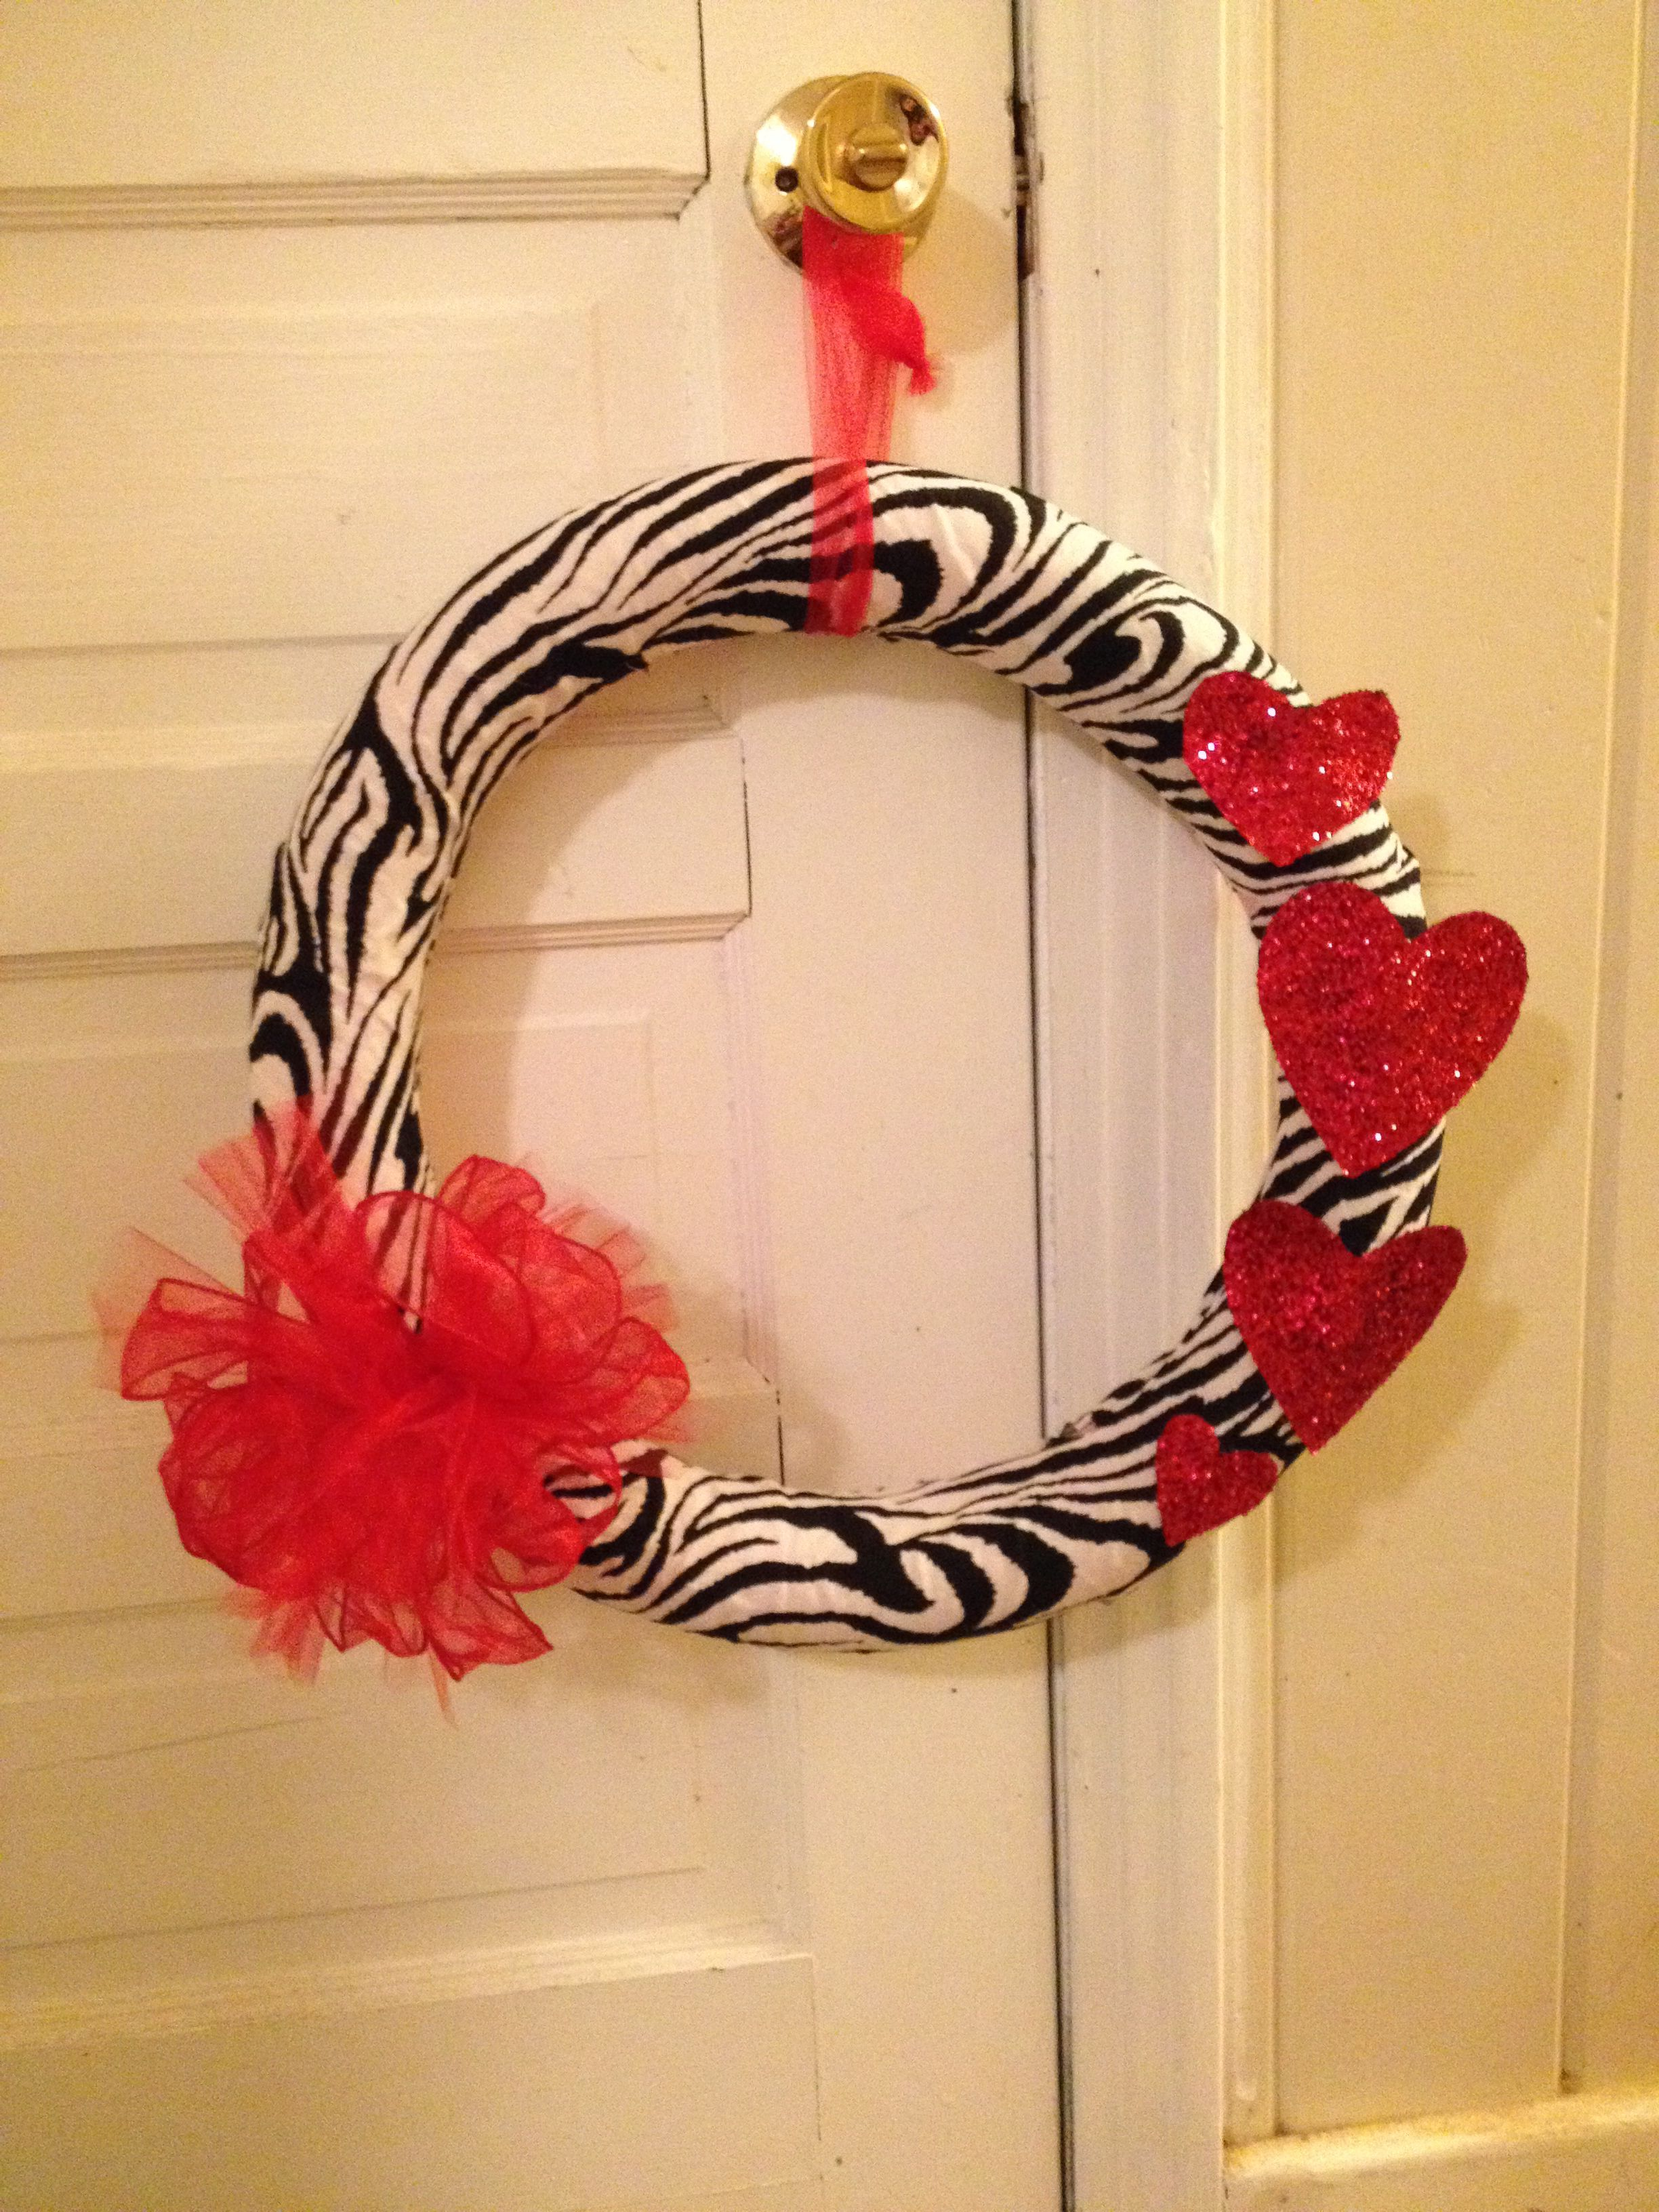 Our first attempt at the pool noodle wreath! #poolnoodlewreath Our first attempt at the pool noodle wreath! #poolnoodlewreath